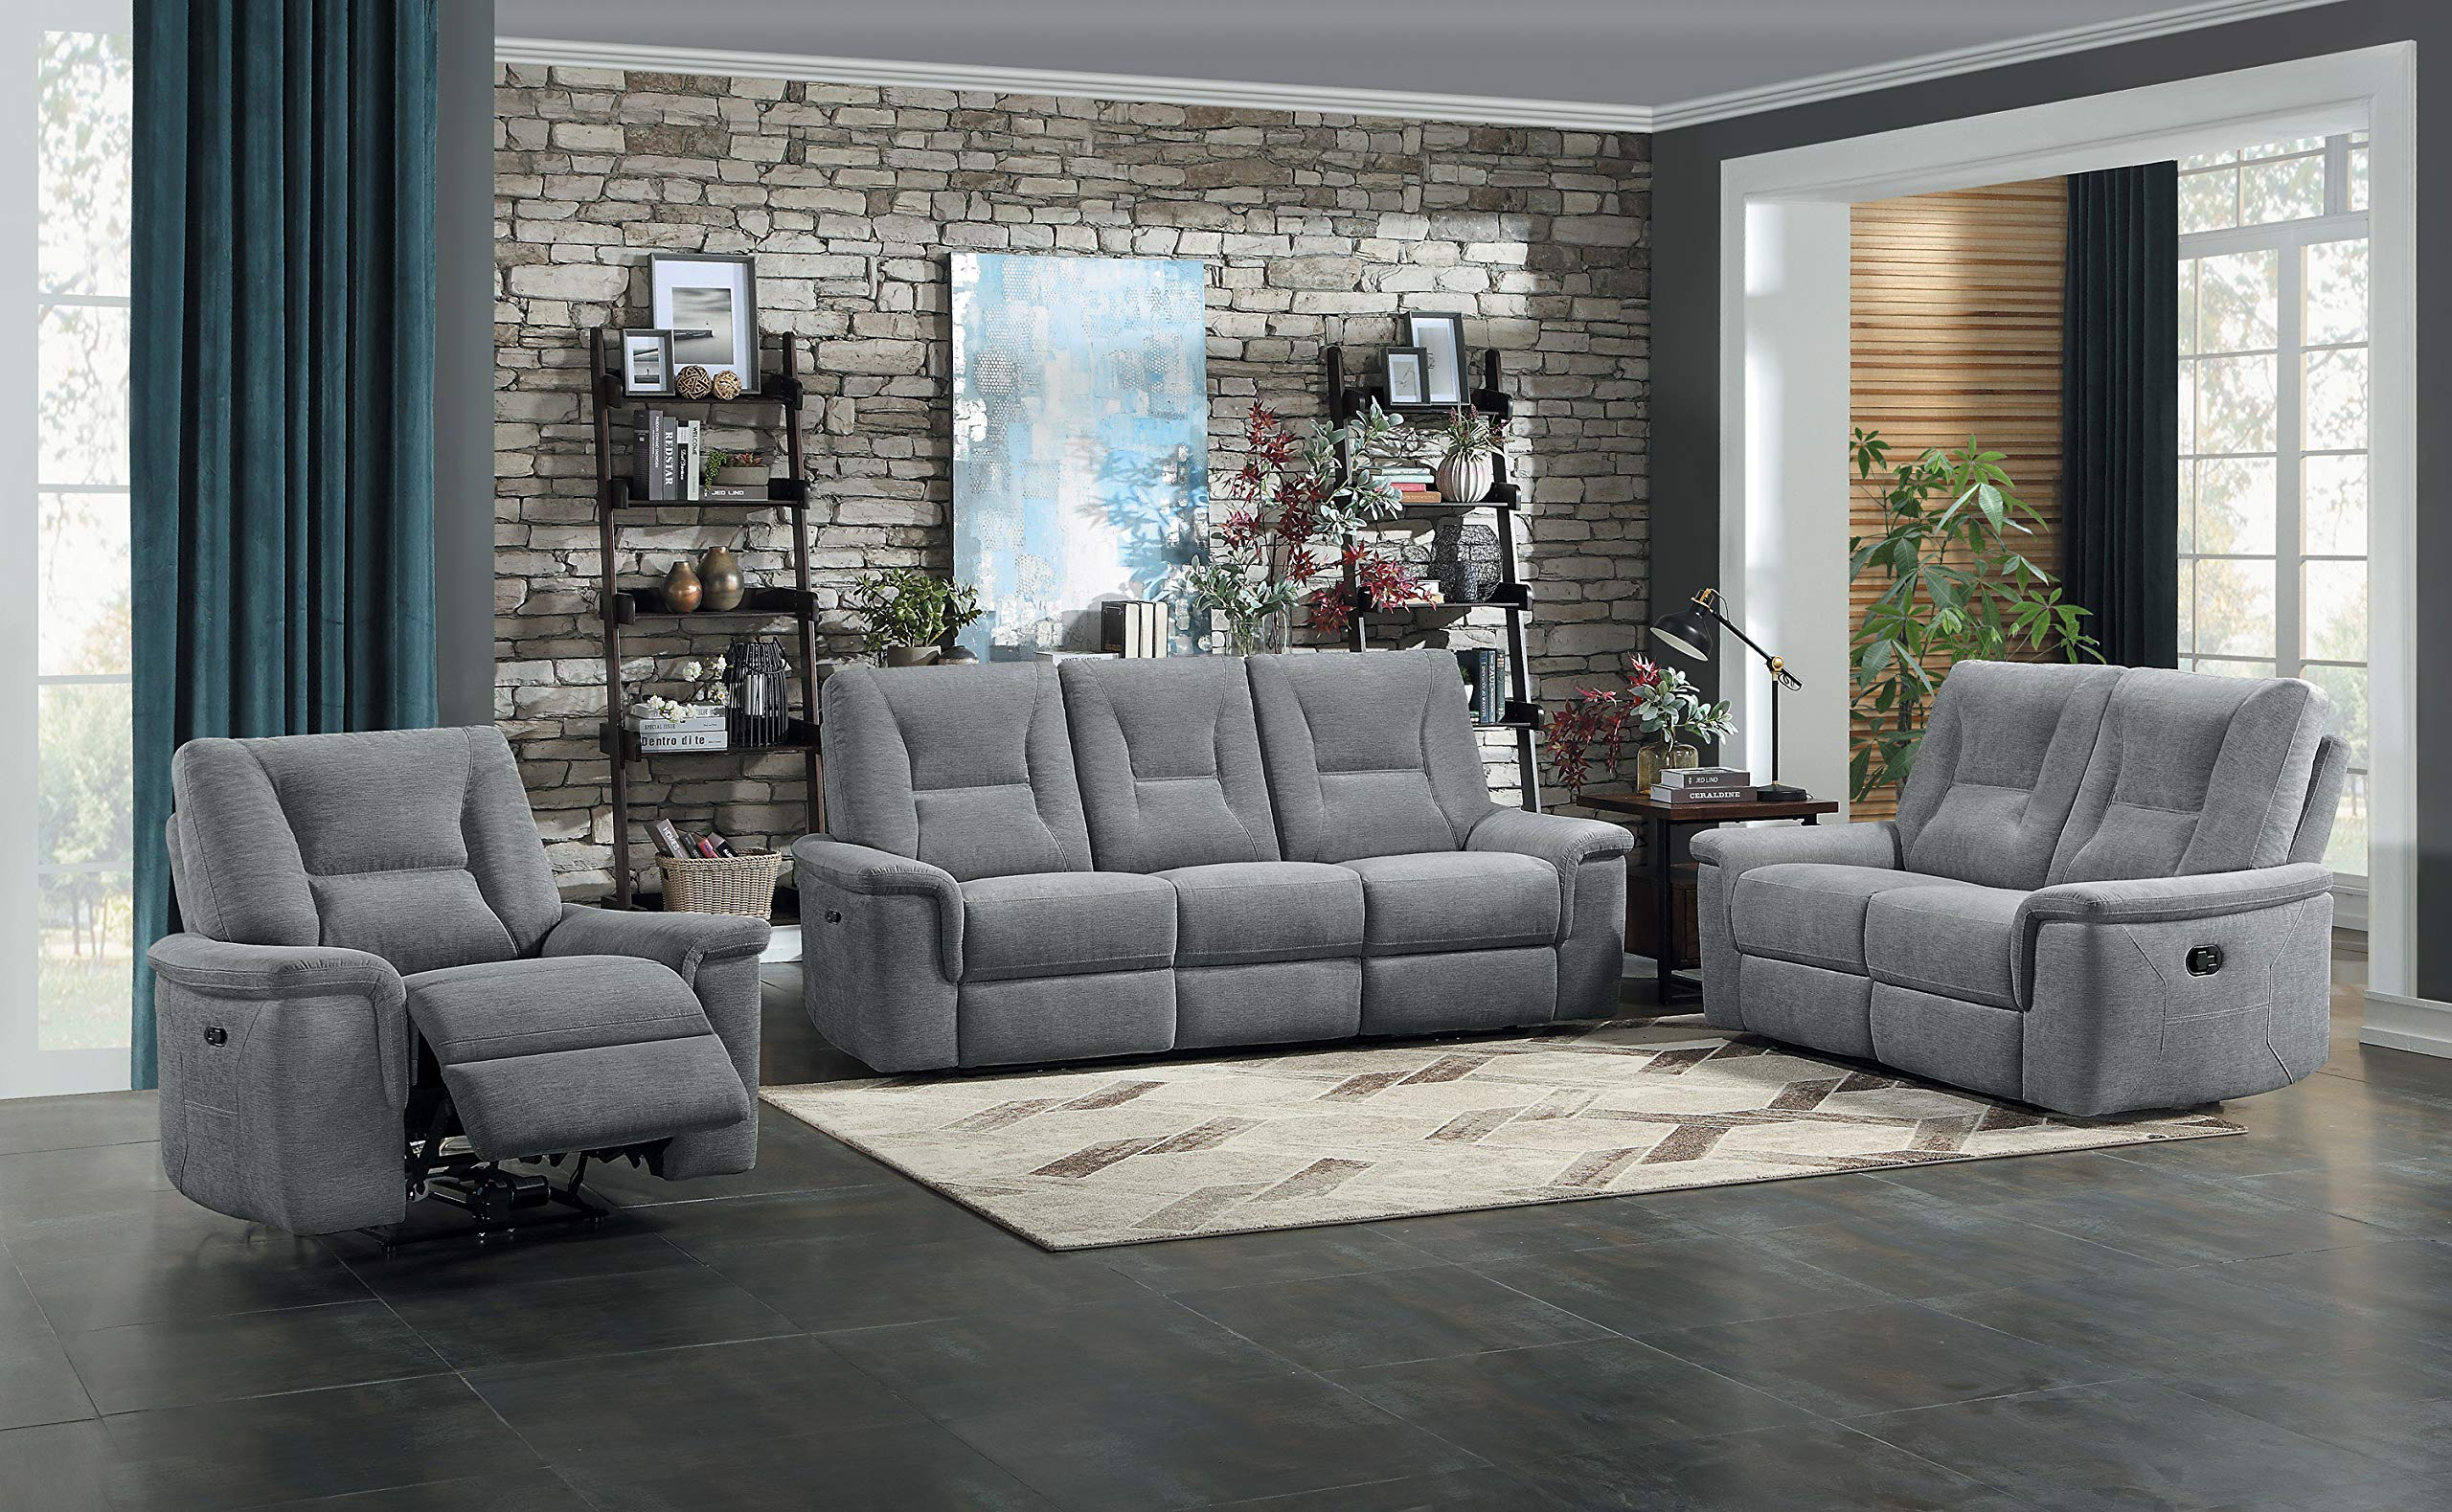 Homelegance 3-Piece Manual Reclining Sofa Set, Metal Gray by Homelegance